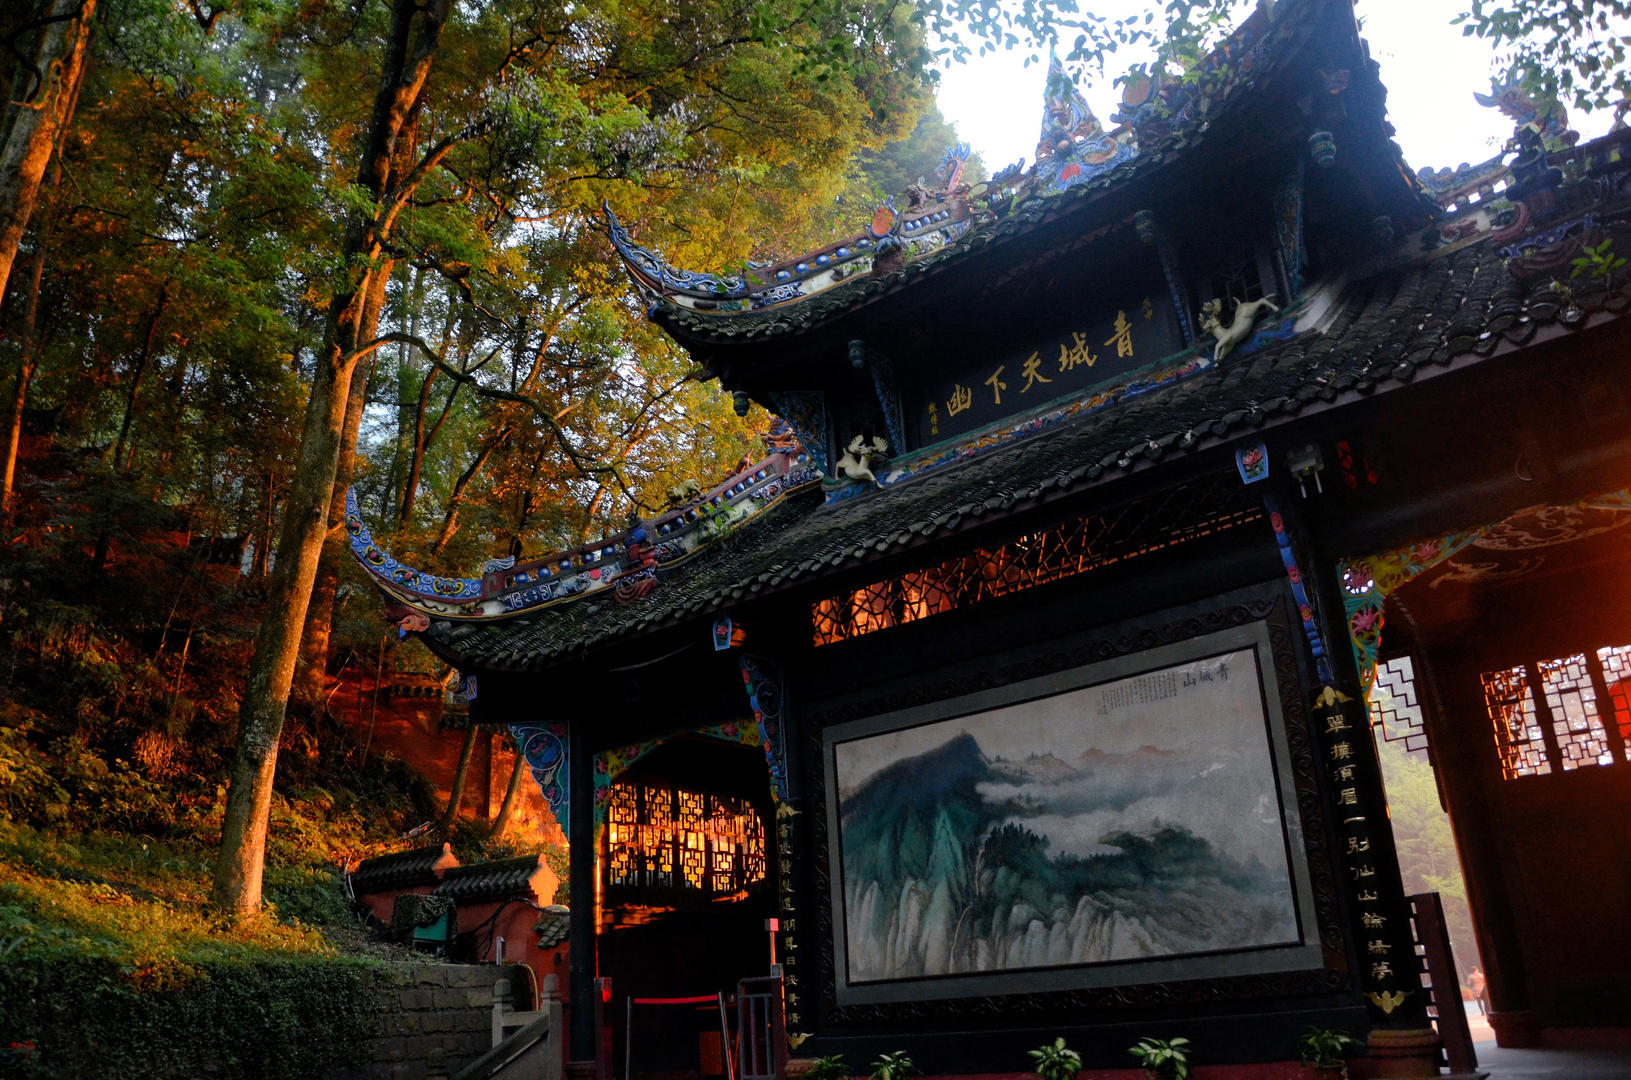 KICTU_LE_Worship The Taoism In Mount Qingcheng